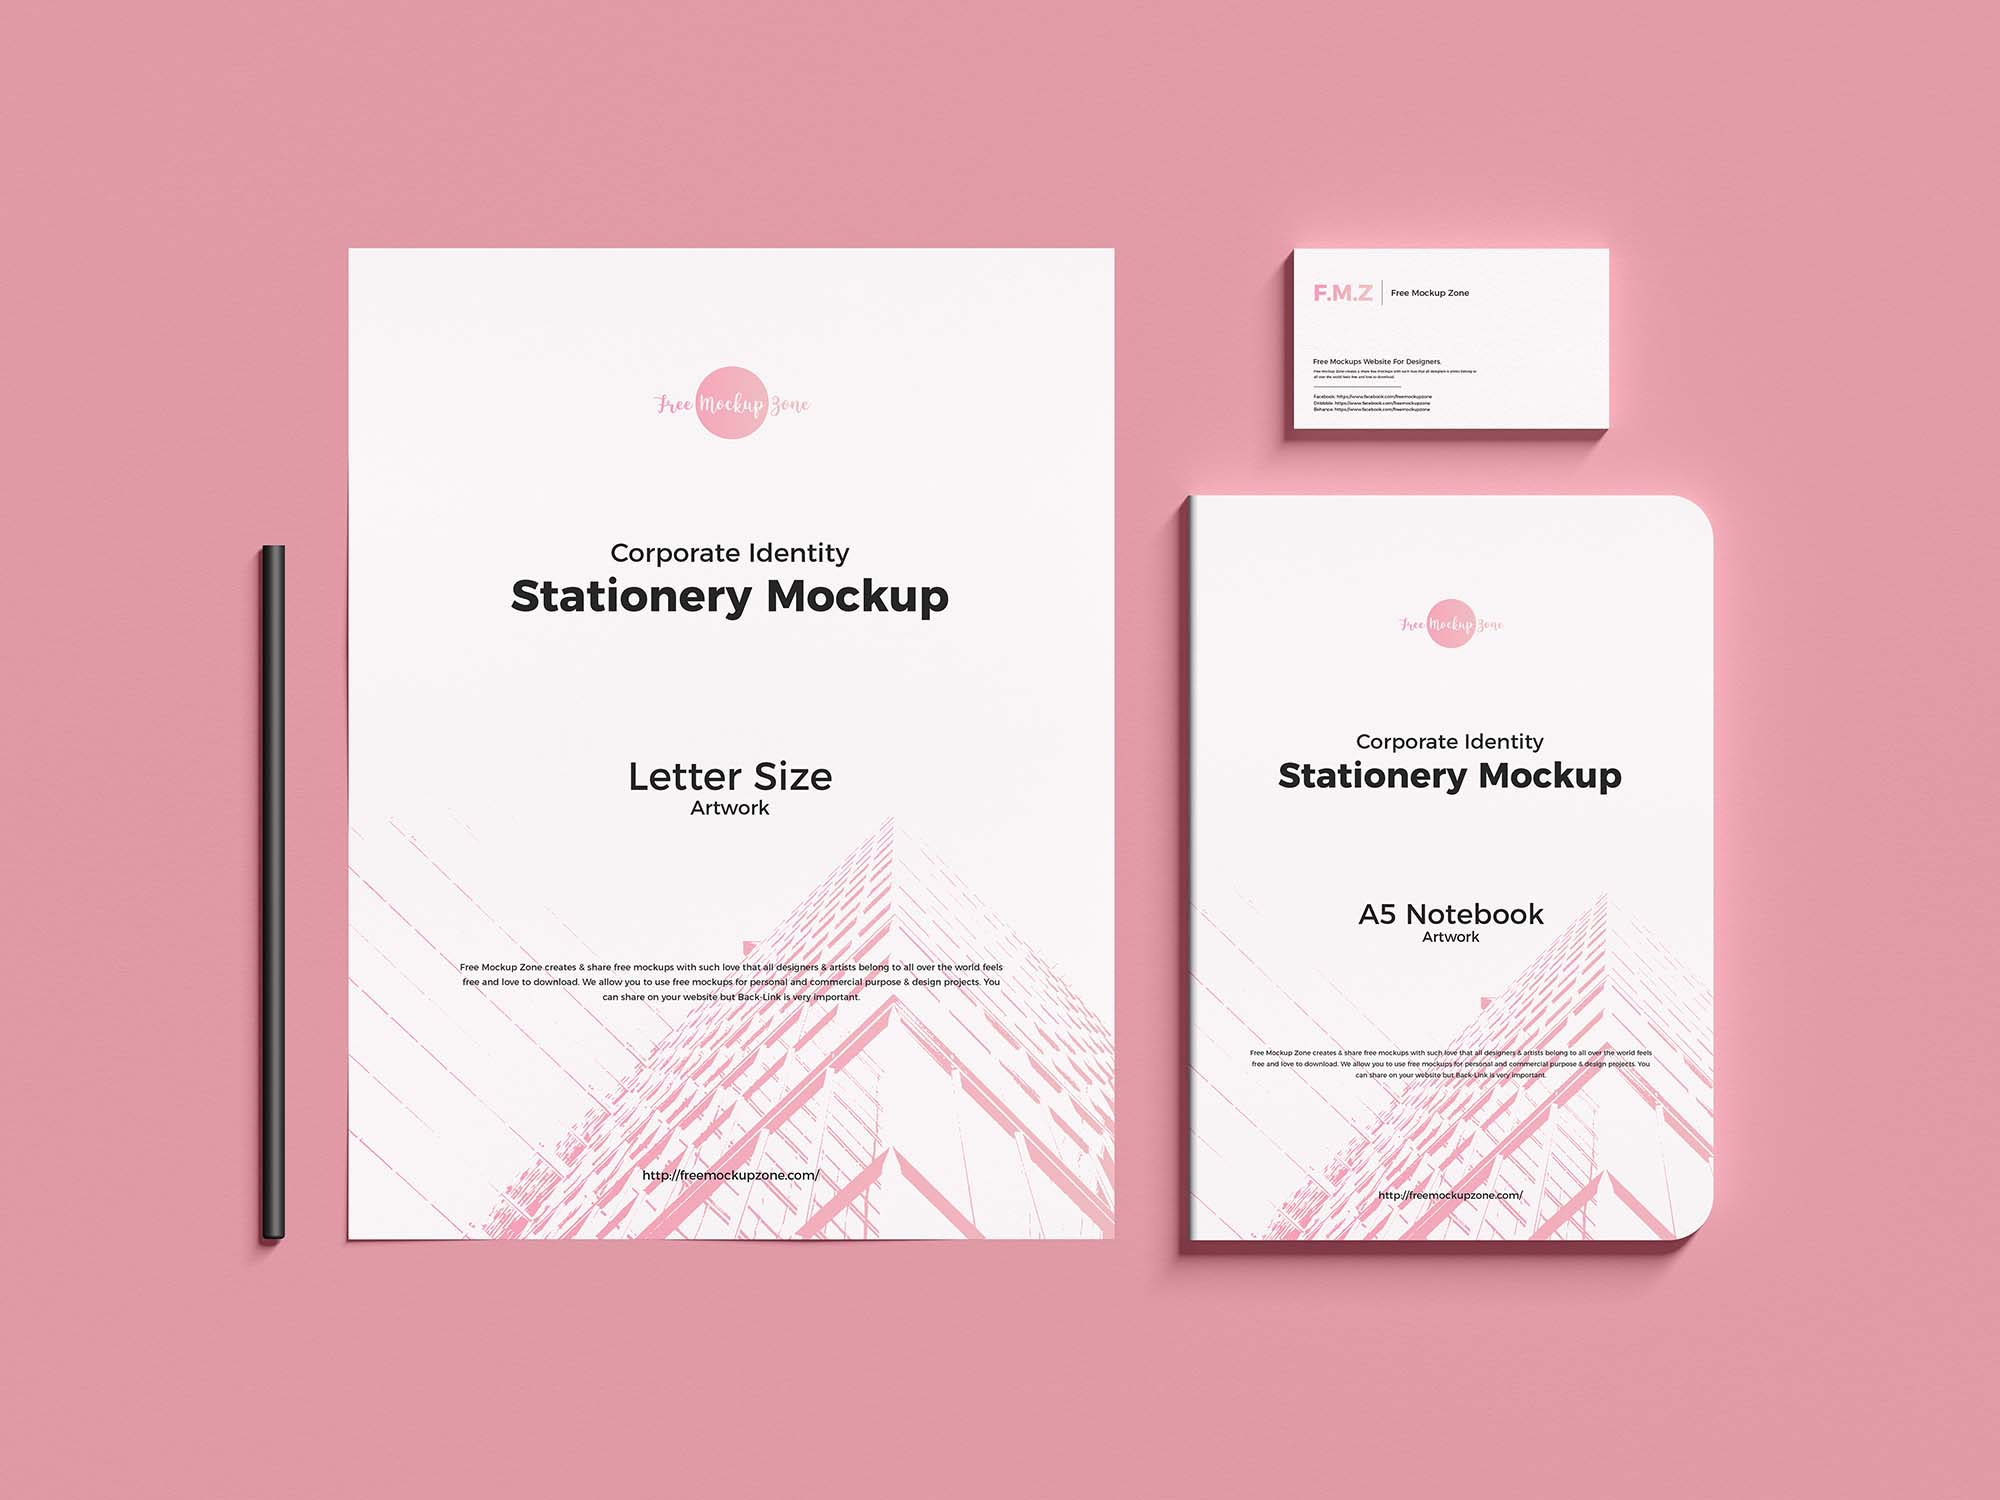 Corporate Identity Stationery Mockup